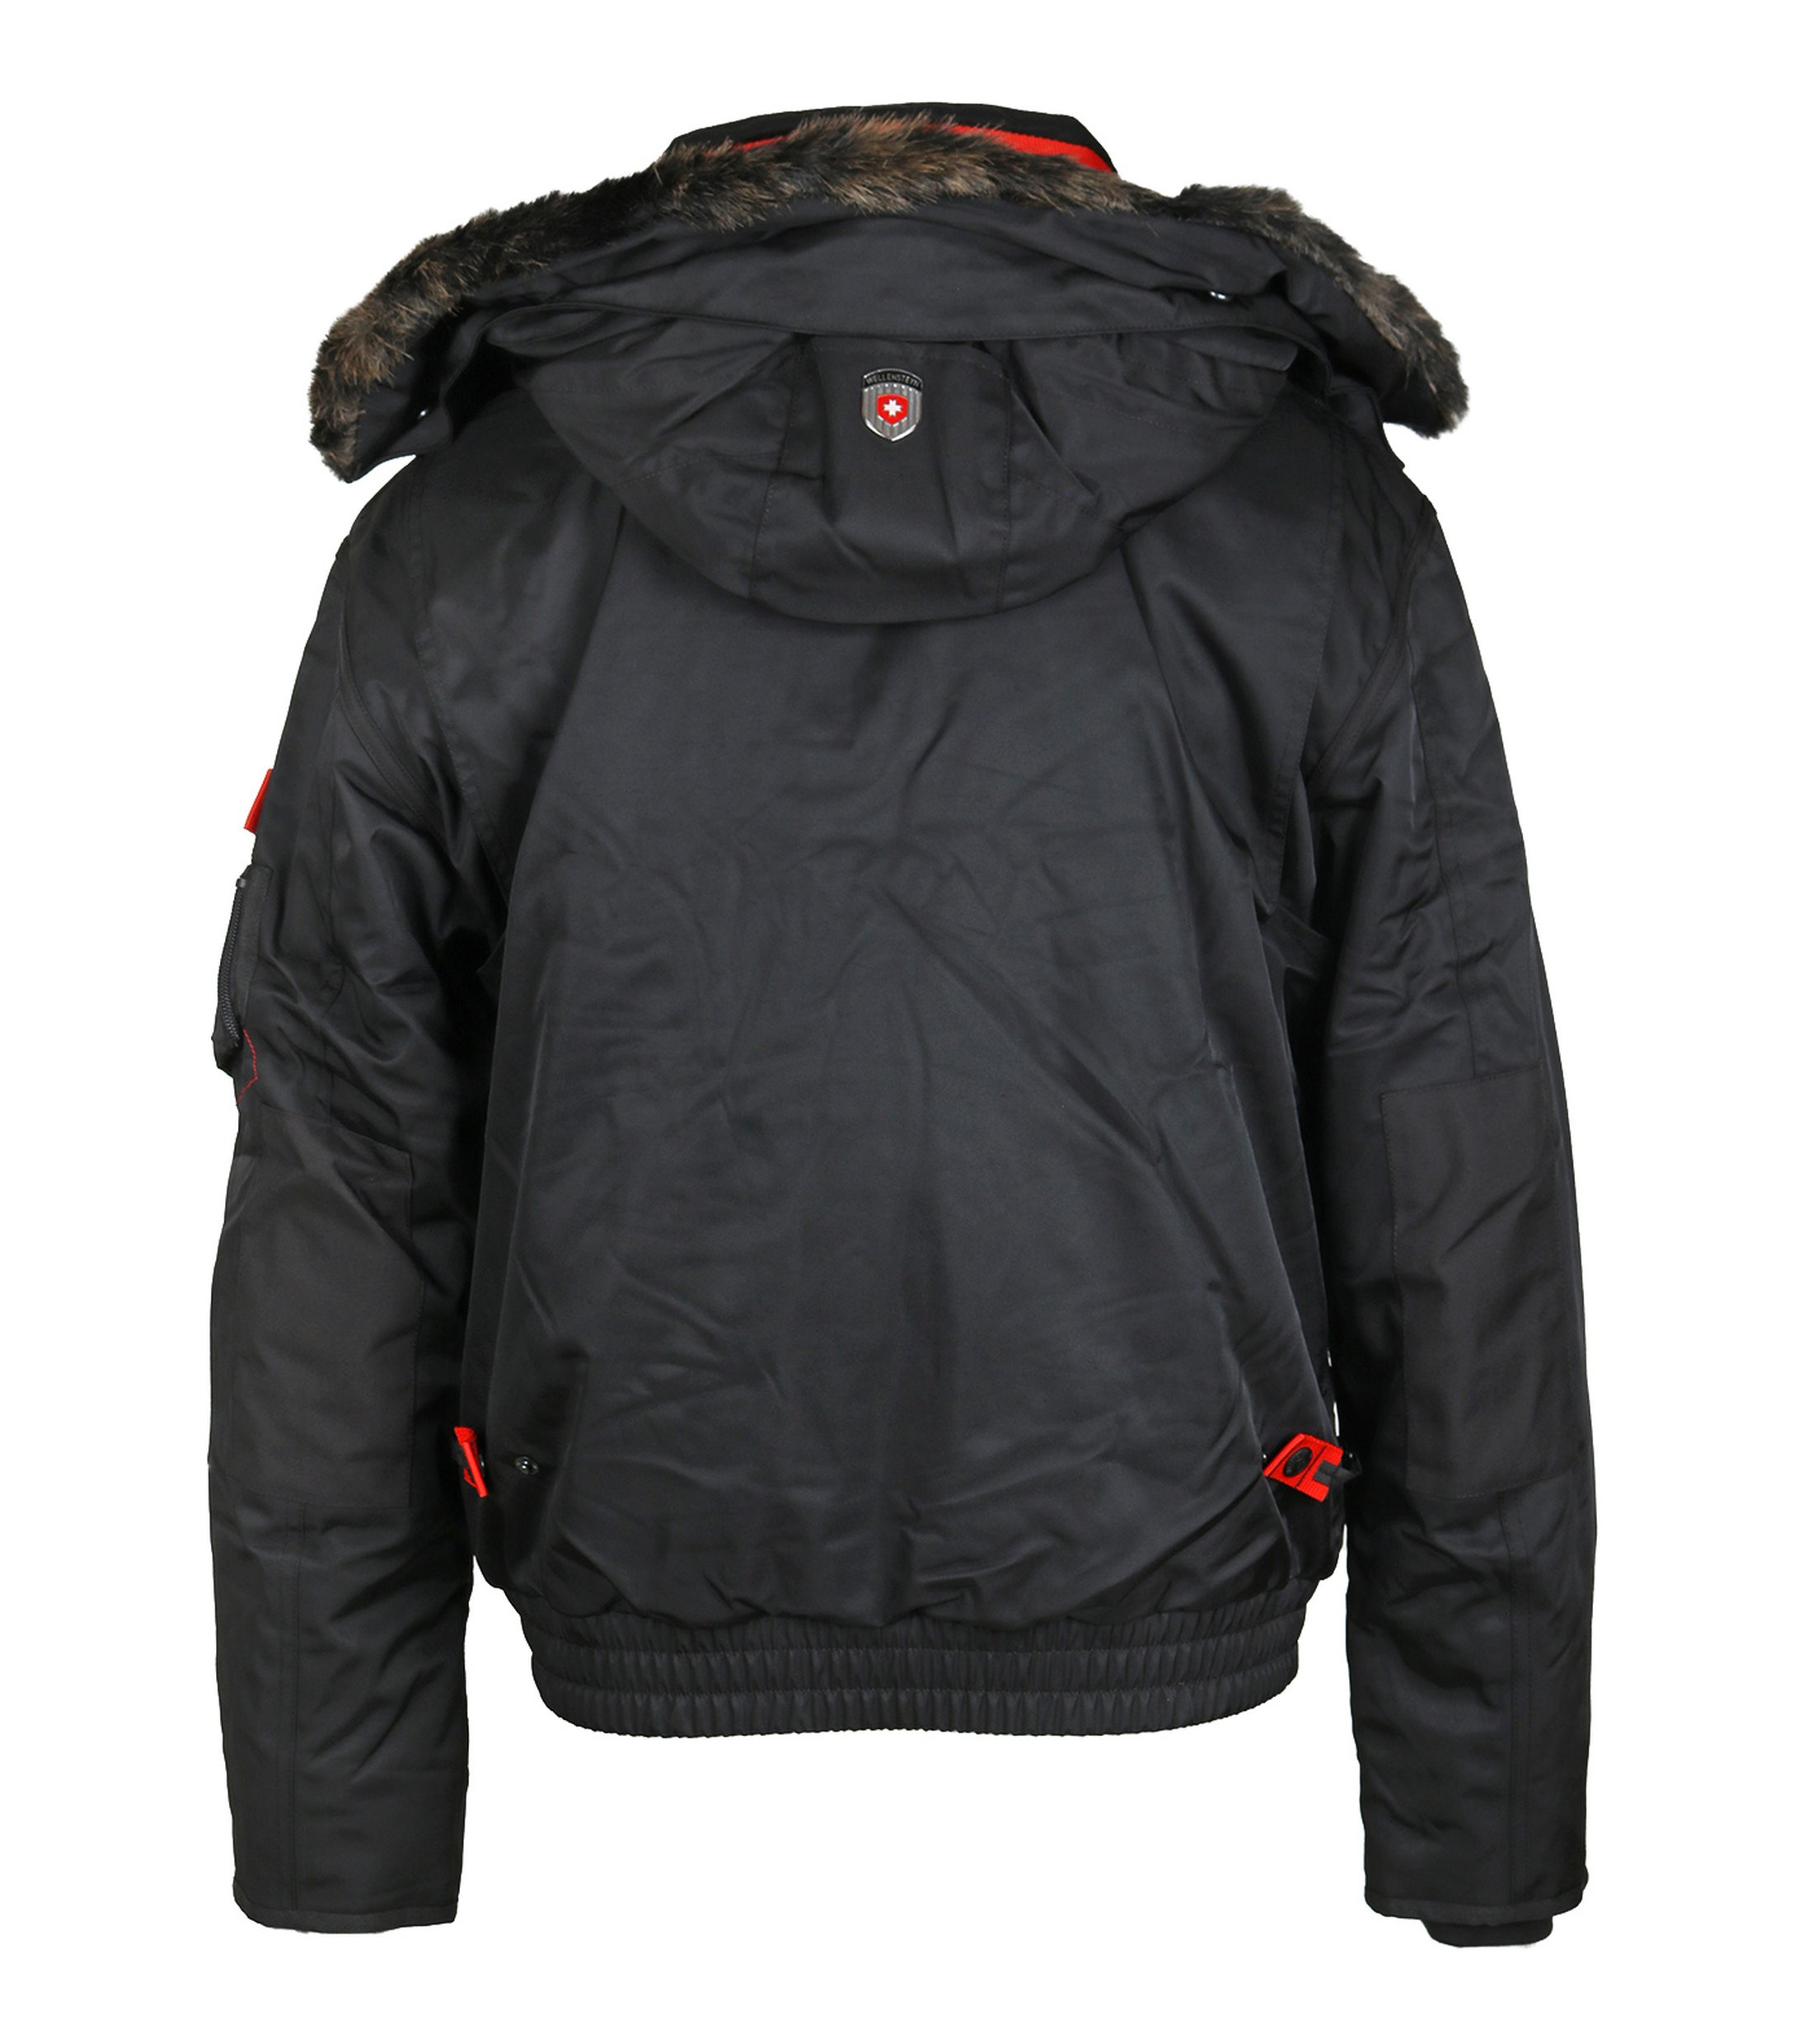 Wellensteyn Rescue Jacket Black foto 3